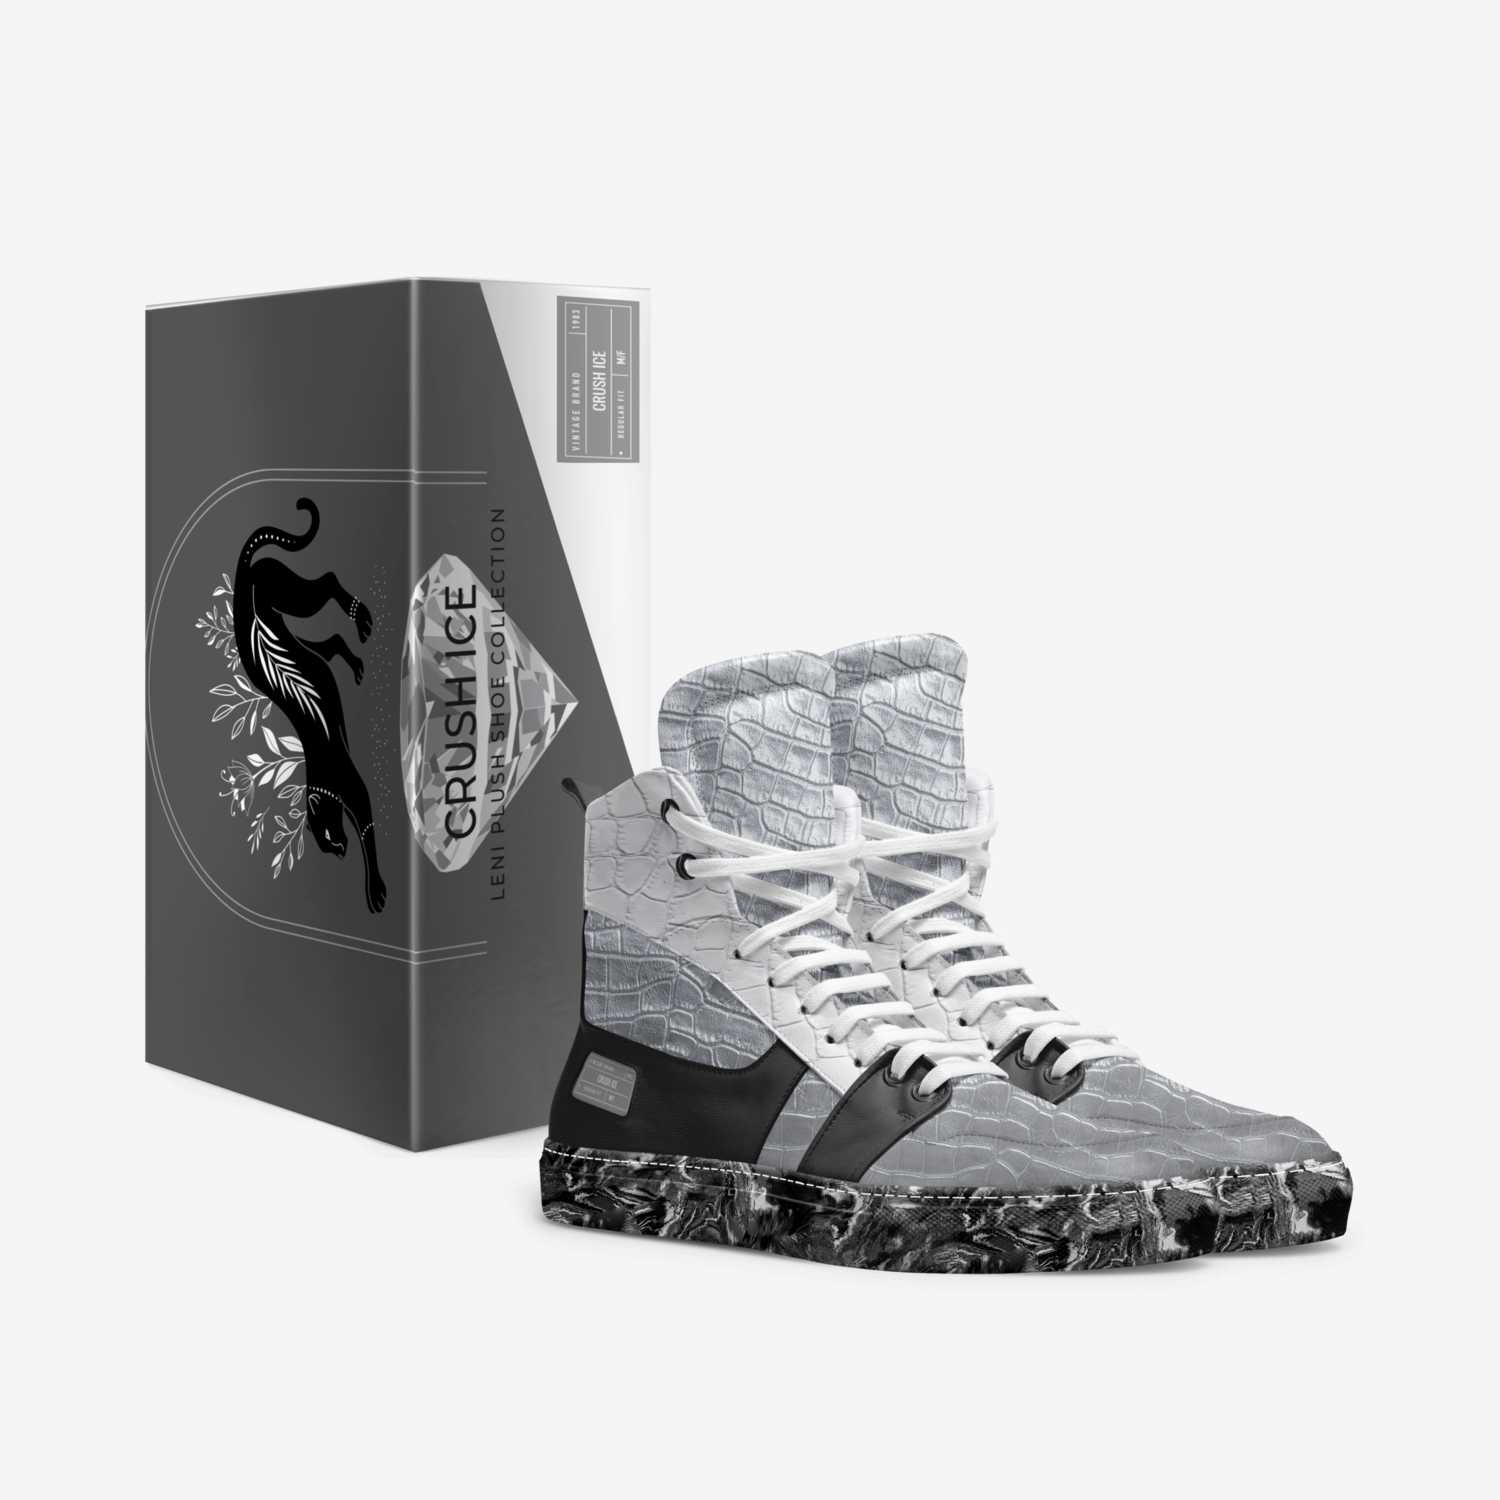 Crush Ice custom made in Italy shoes by Delena Rusan   Box view